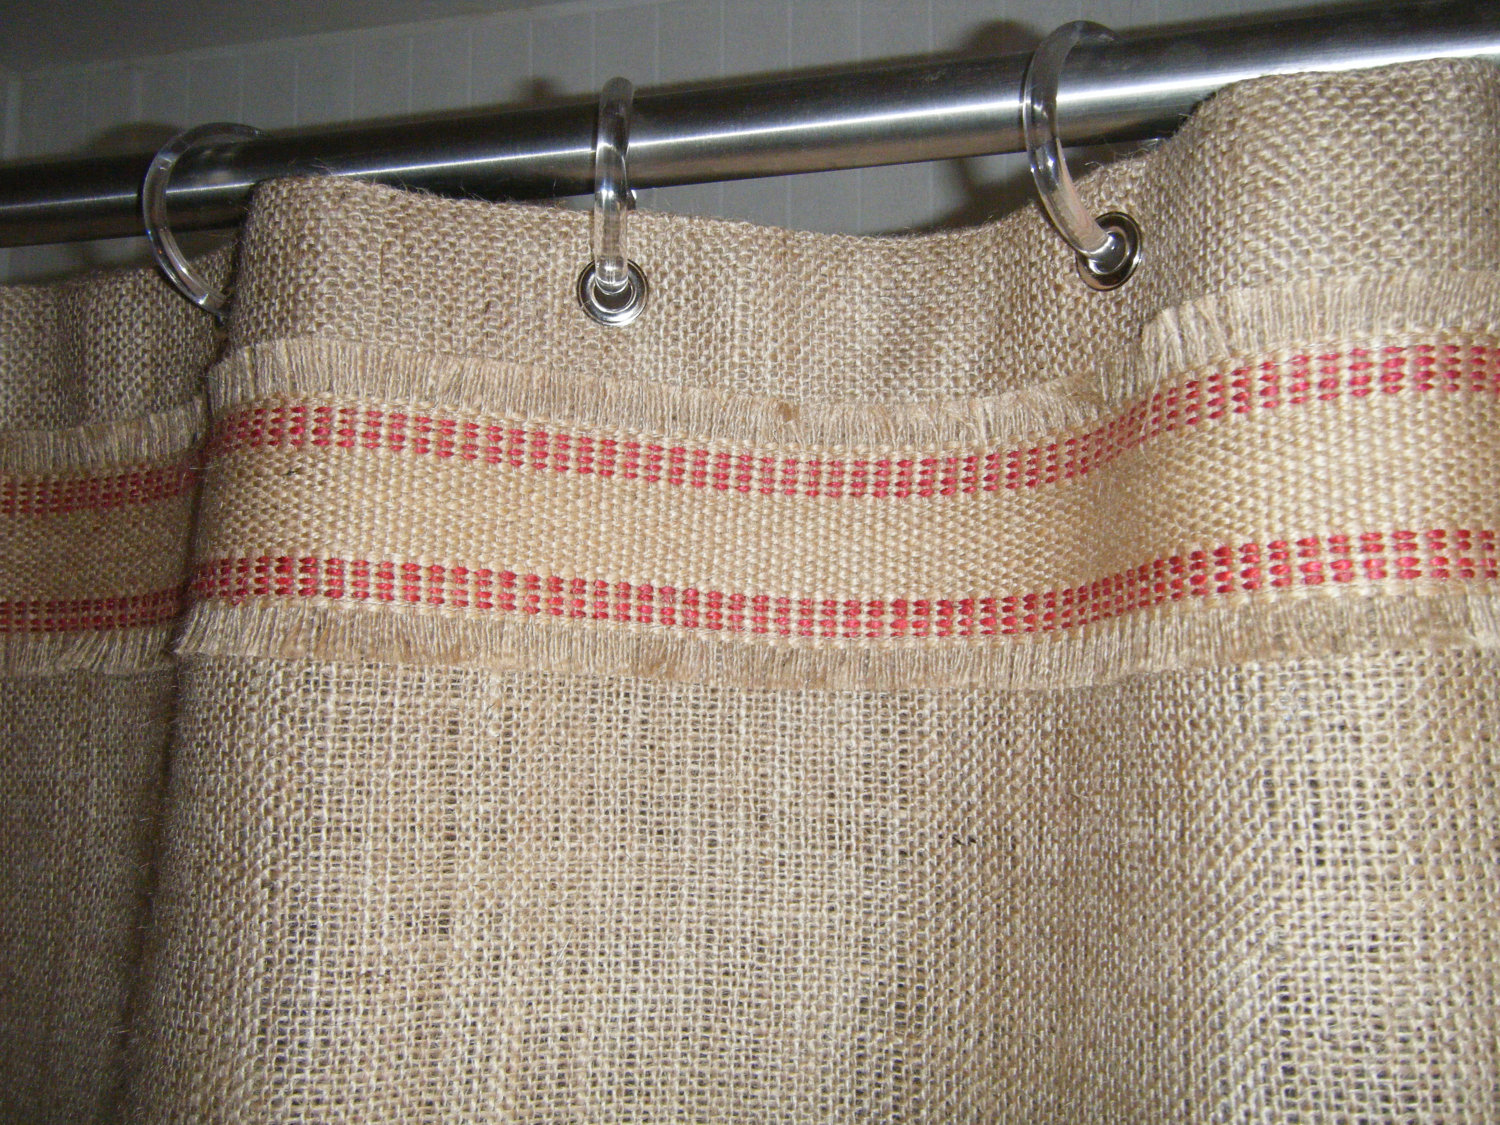 Creative Design Color Bathroom With Burlap Shower Curtain For Make Your Bathroom Interior More Awesome